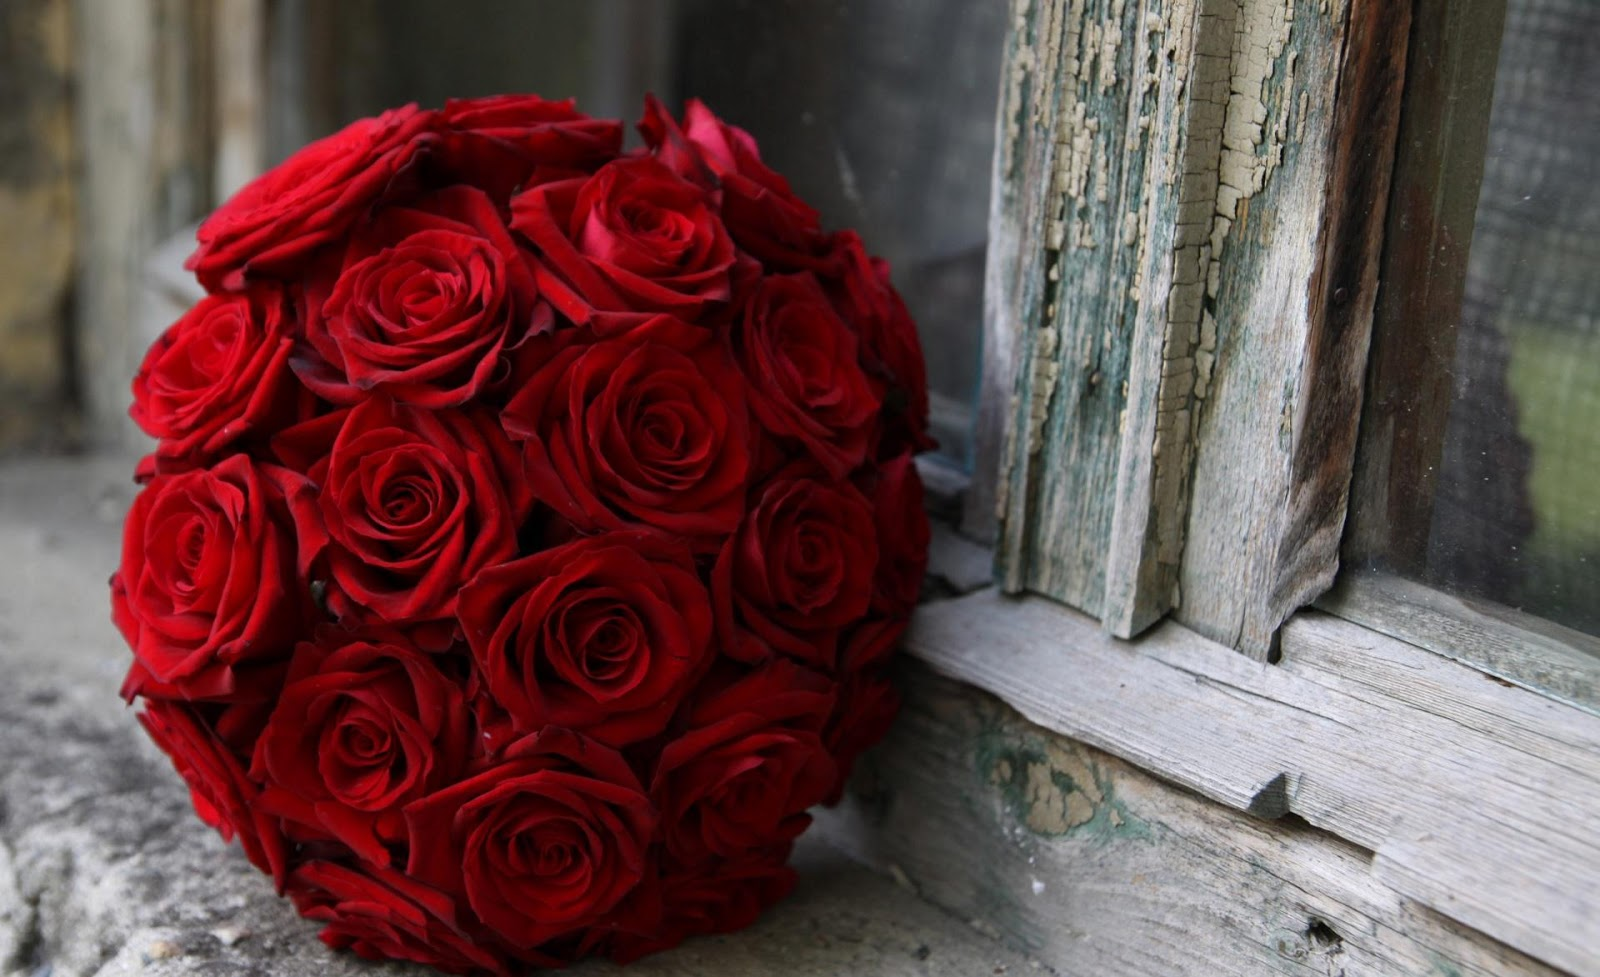 Red roses flower beautiful red rose wallpaper angelic hugs rose wallpapers red rose desktop wallpapers red rose desktop backgrounds images photos pics and pictures in the category of flowers wallpapers izmirmasajfo